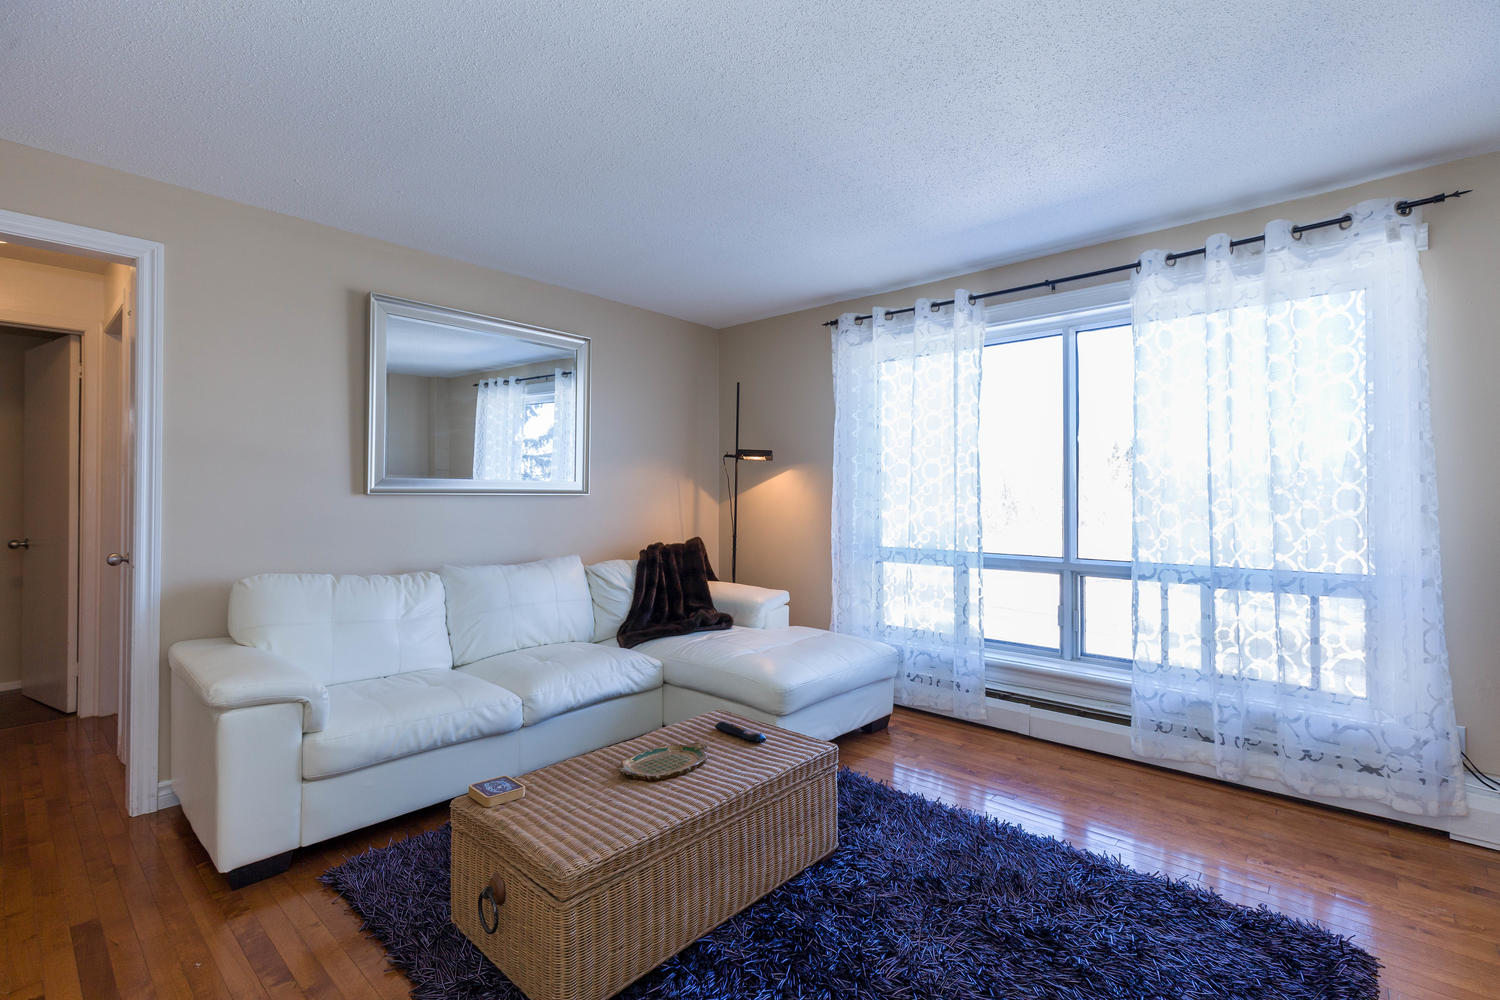 Spacious living area with hardwood flooring, large windows with great views of surrounding trees and Gatineau hills off in the distance